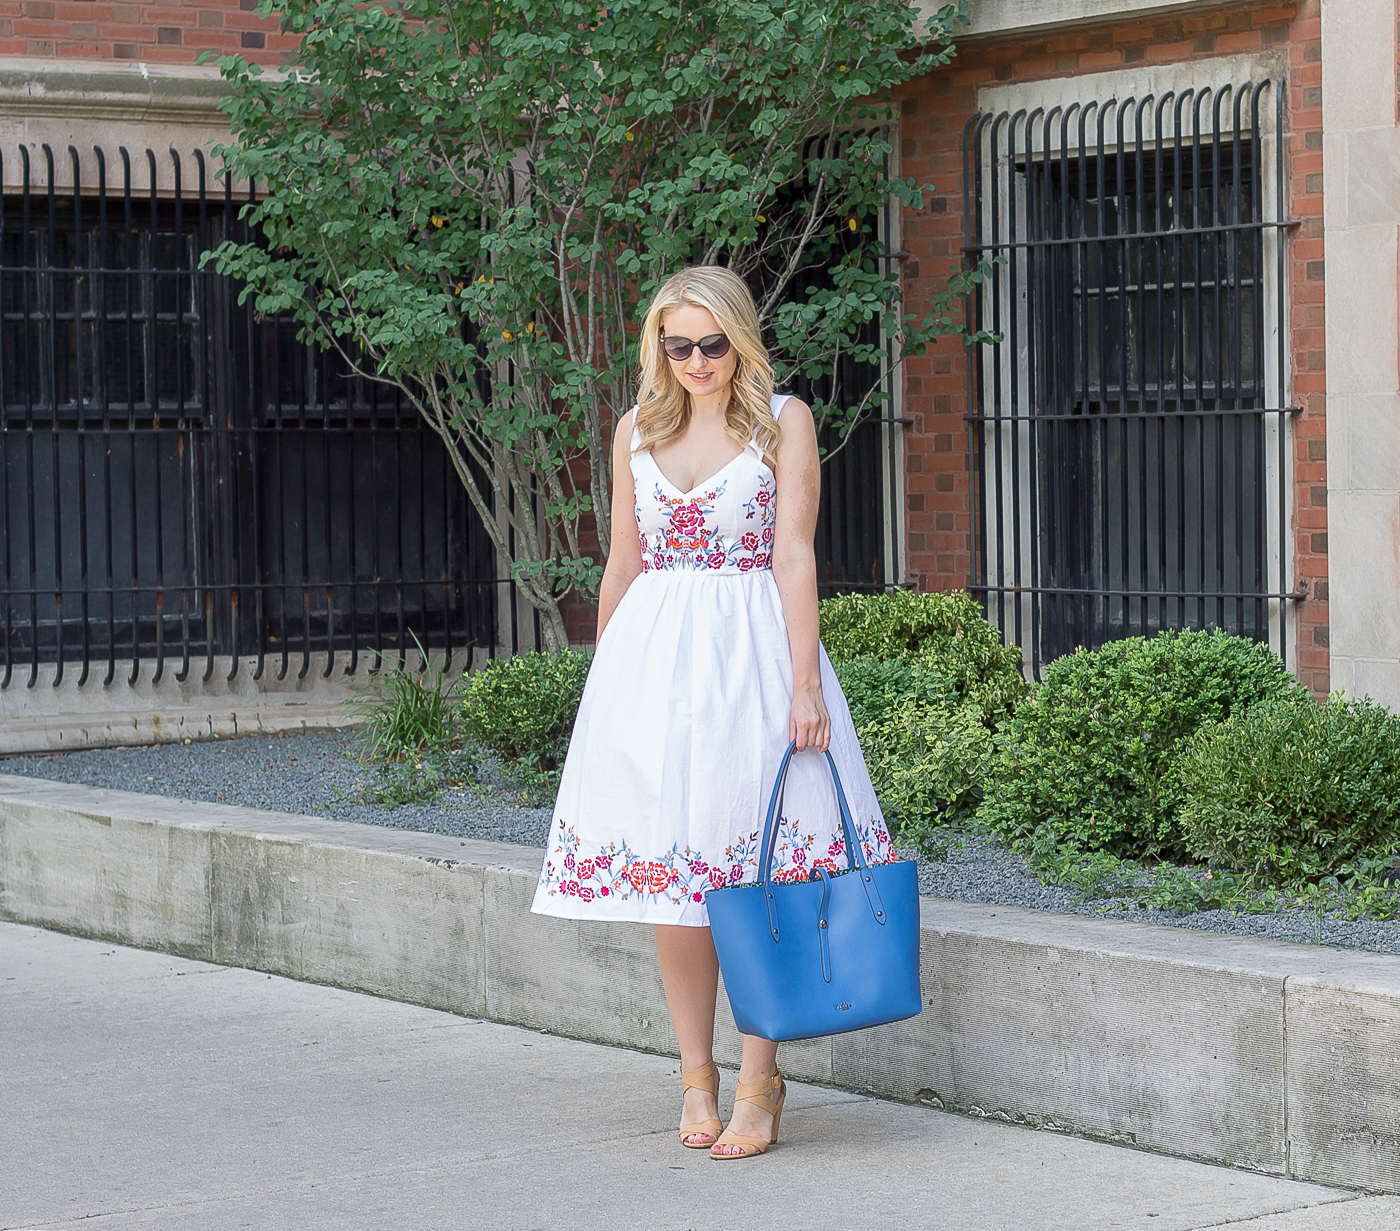 A white midi dress with embroidery